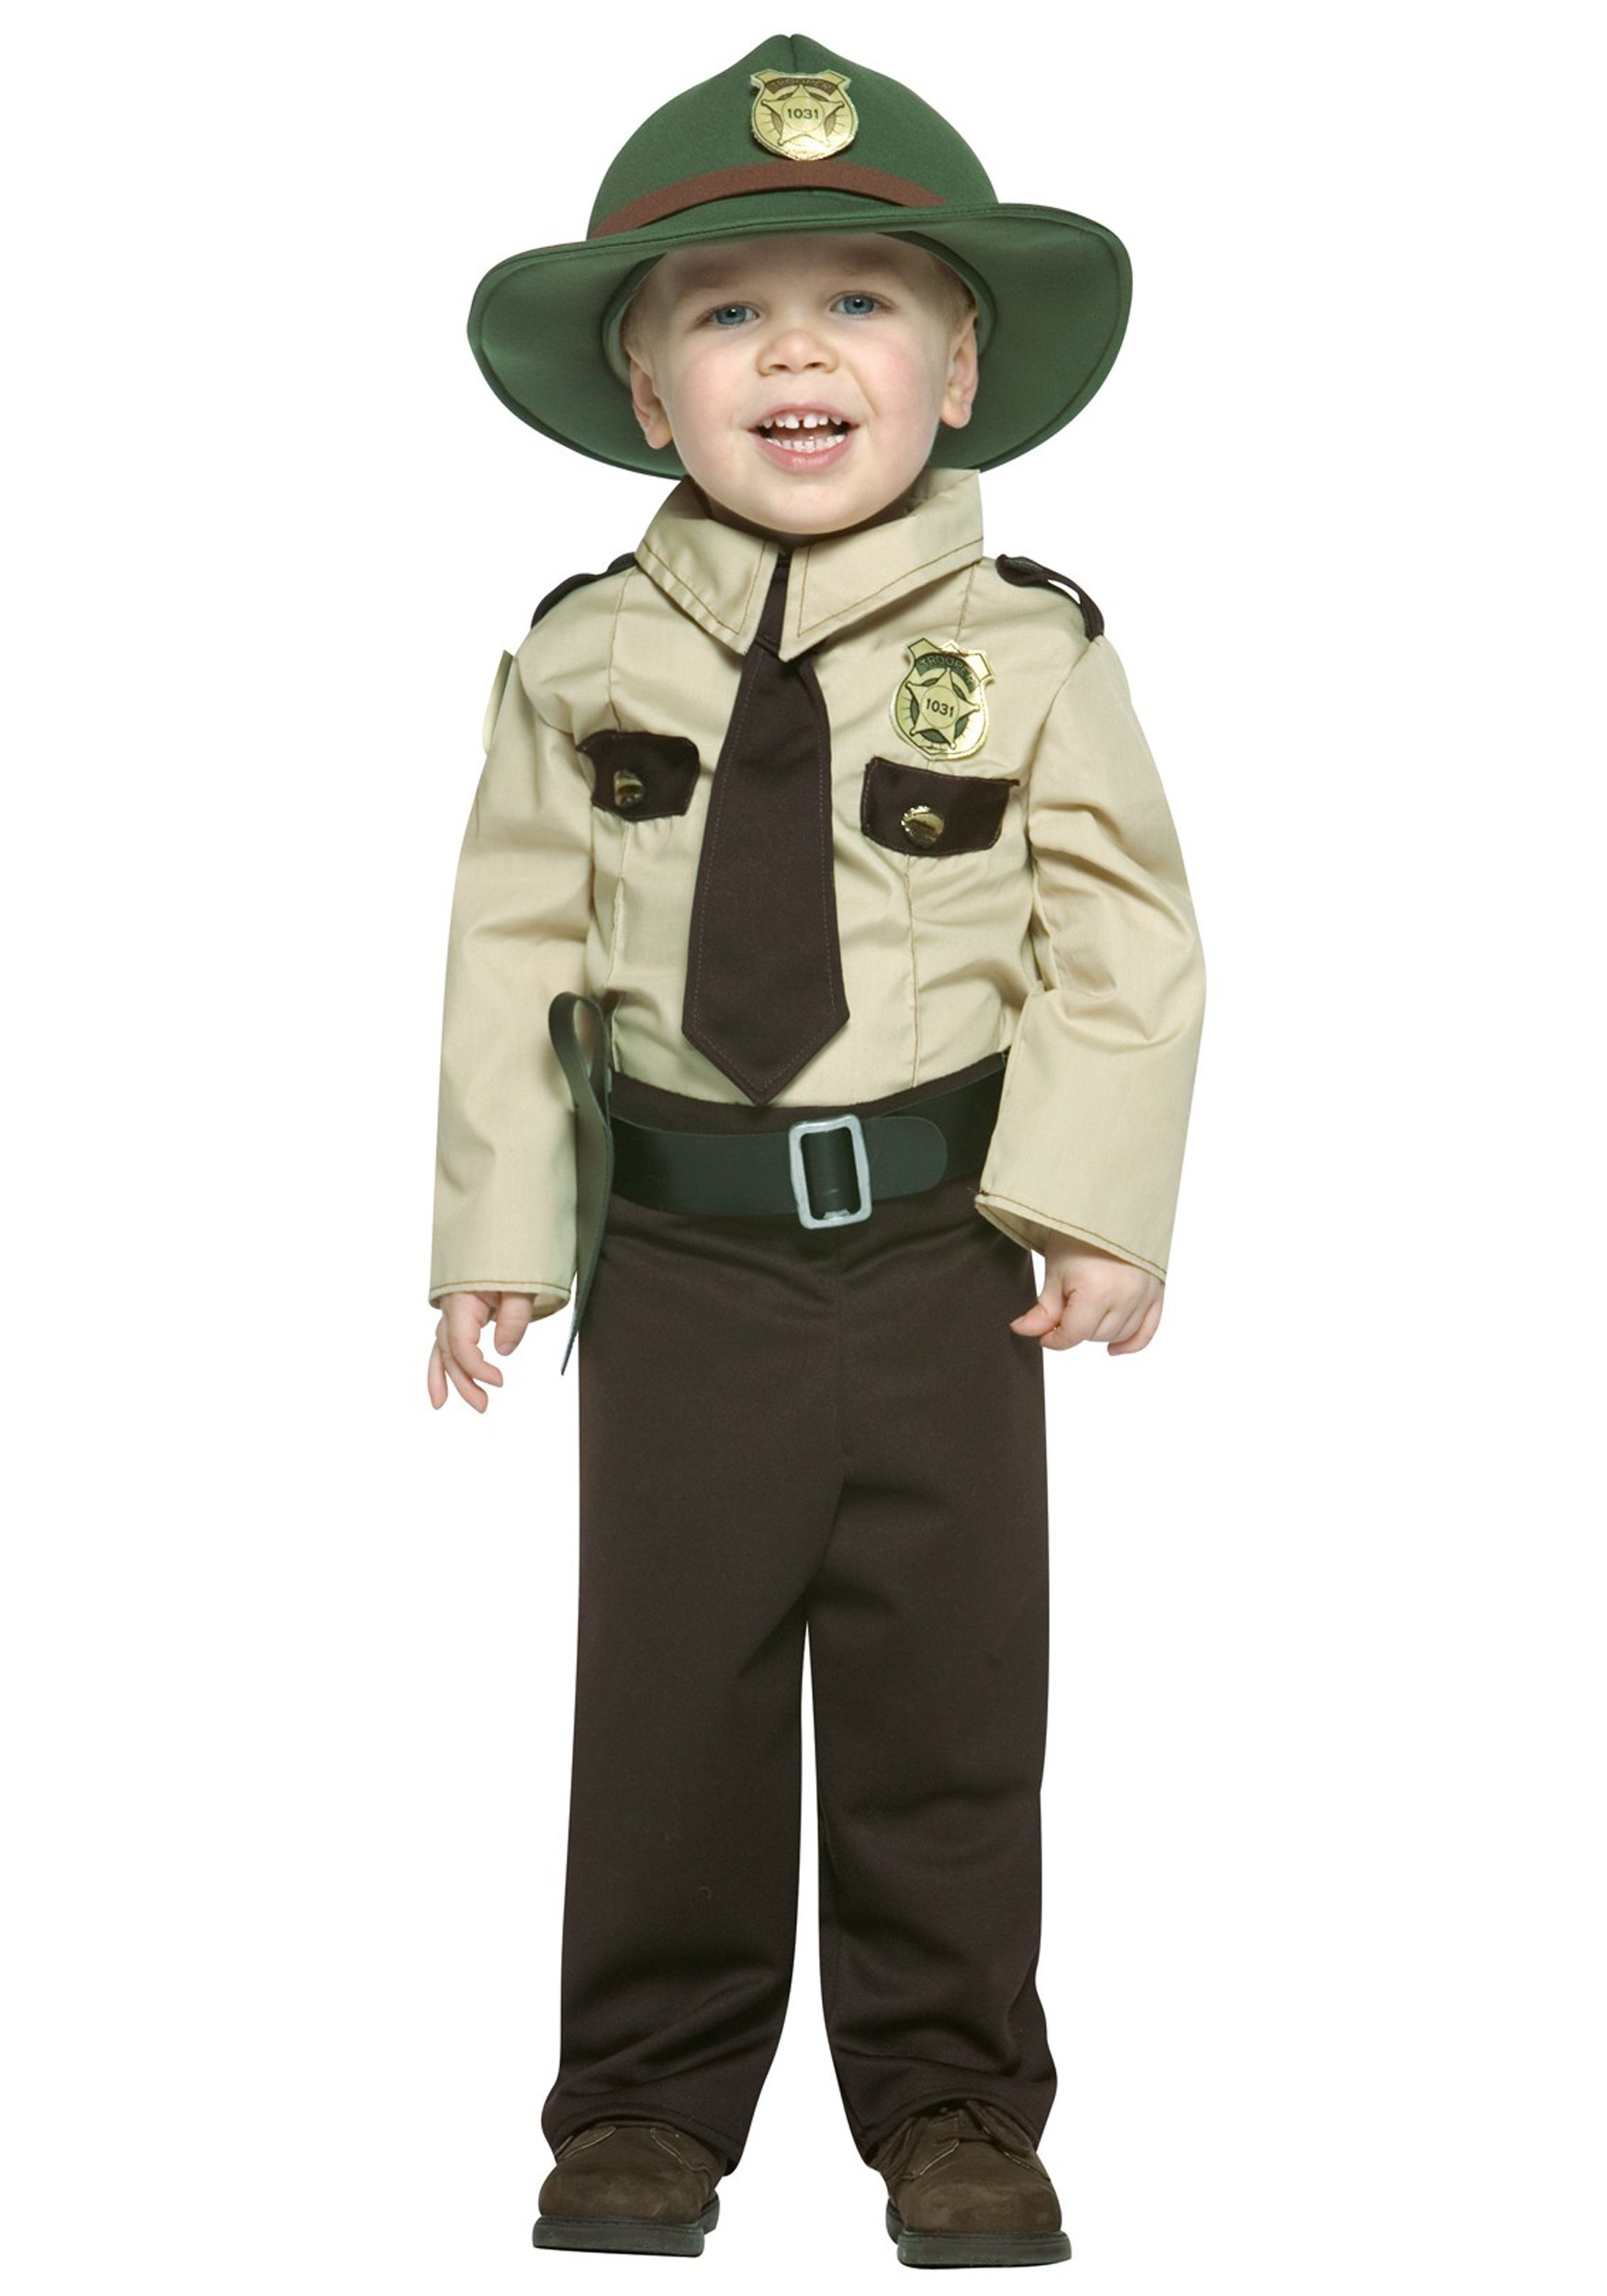 Toddler State Trooper Costume  sc 1 st  Halloween Costumes & Child Police Costumes - Kidu0027s Cop Halloween Costume